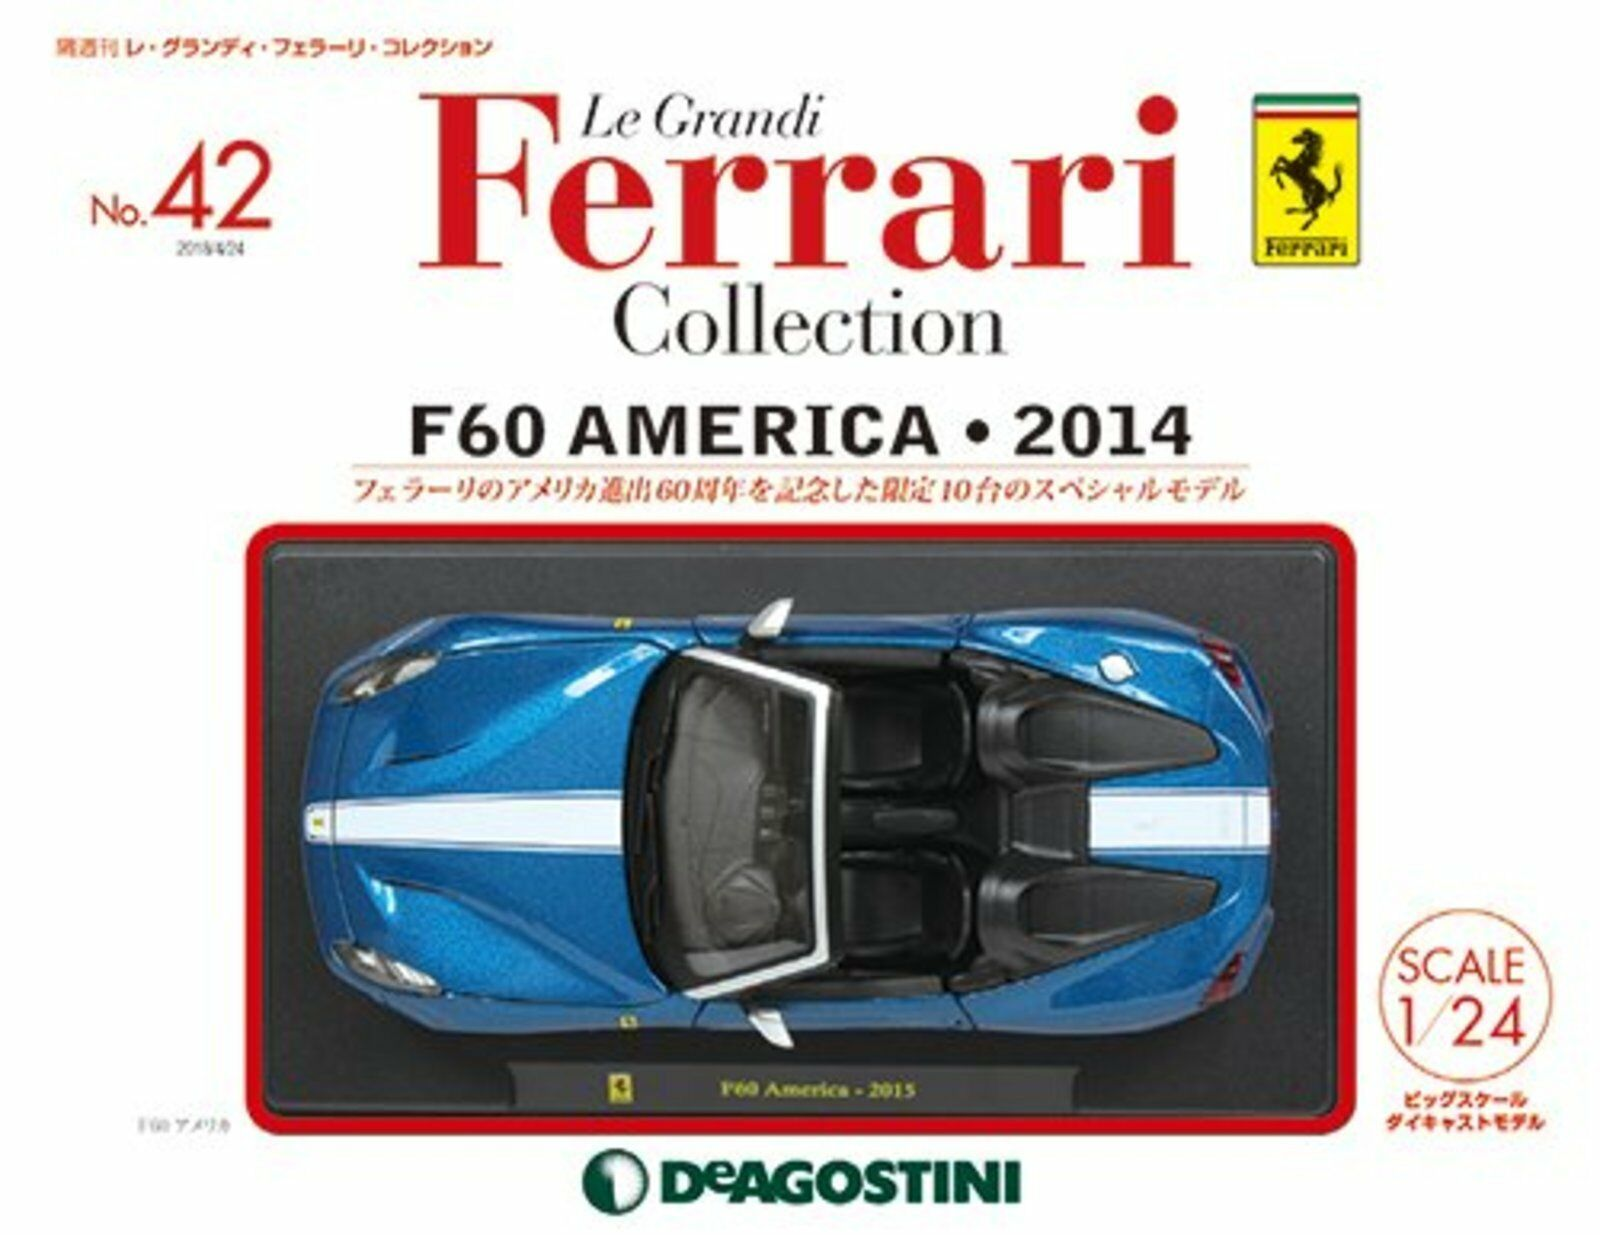 DIE CAST MODEL 1 24  F60 America 2014 Collection No.42 Ferrari  voici la dernière